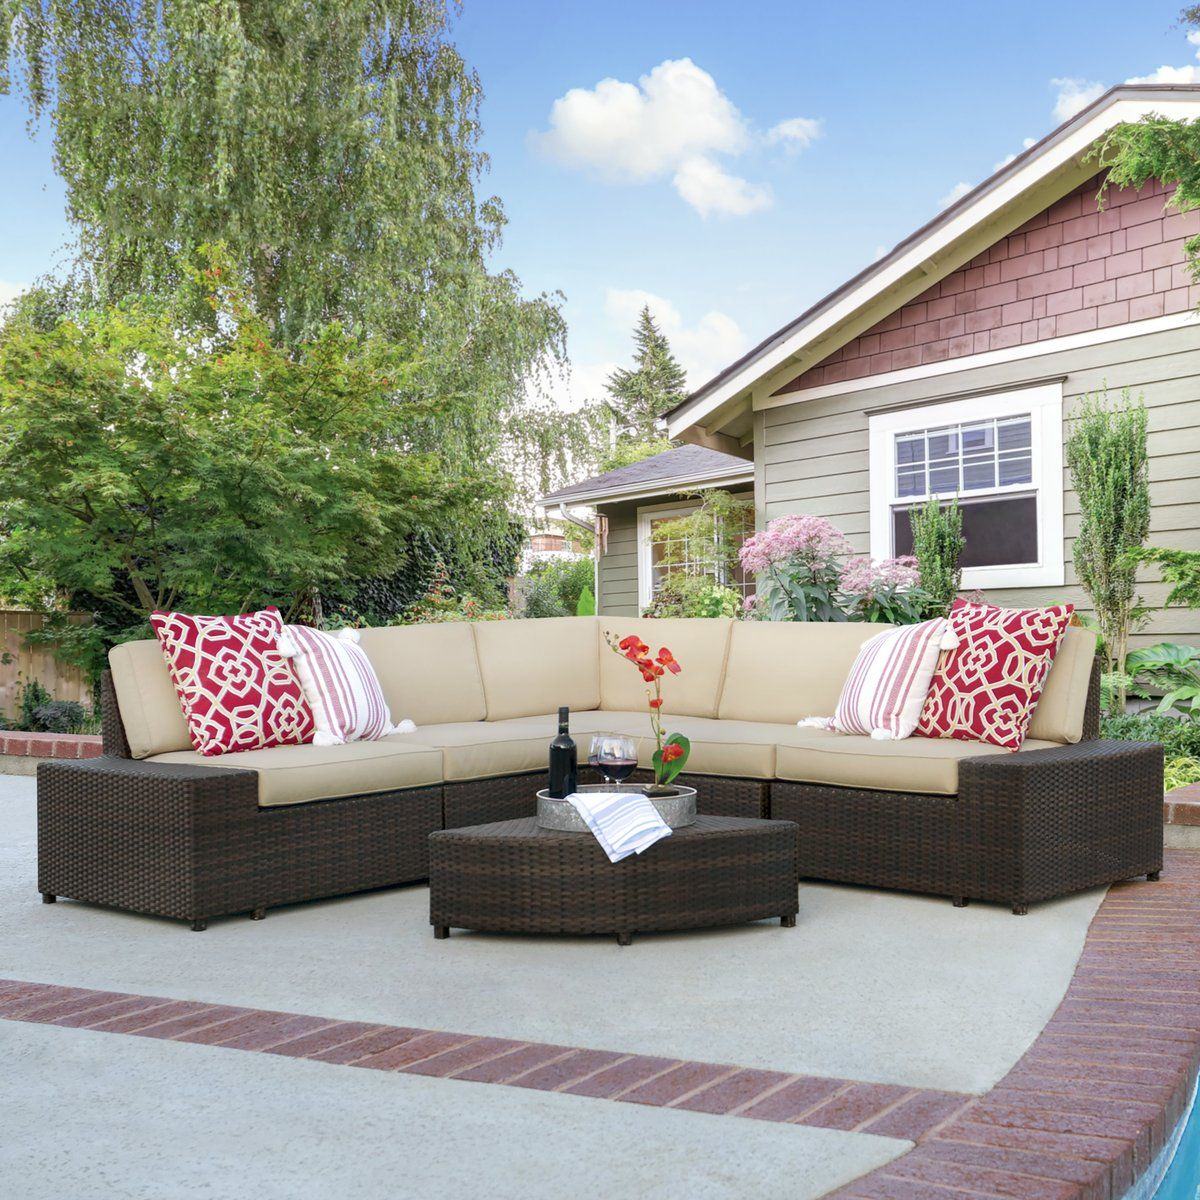 Impress Friends And Family With A Beautiful Comfortable Outdoor Sectional This All Weather